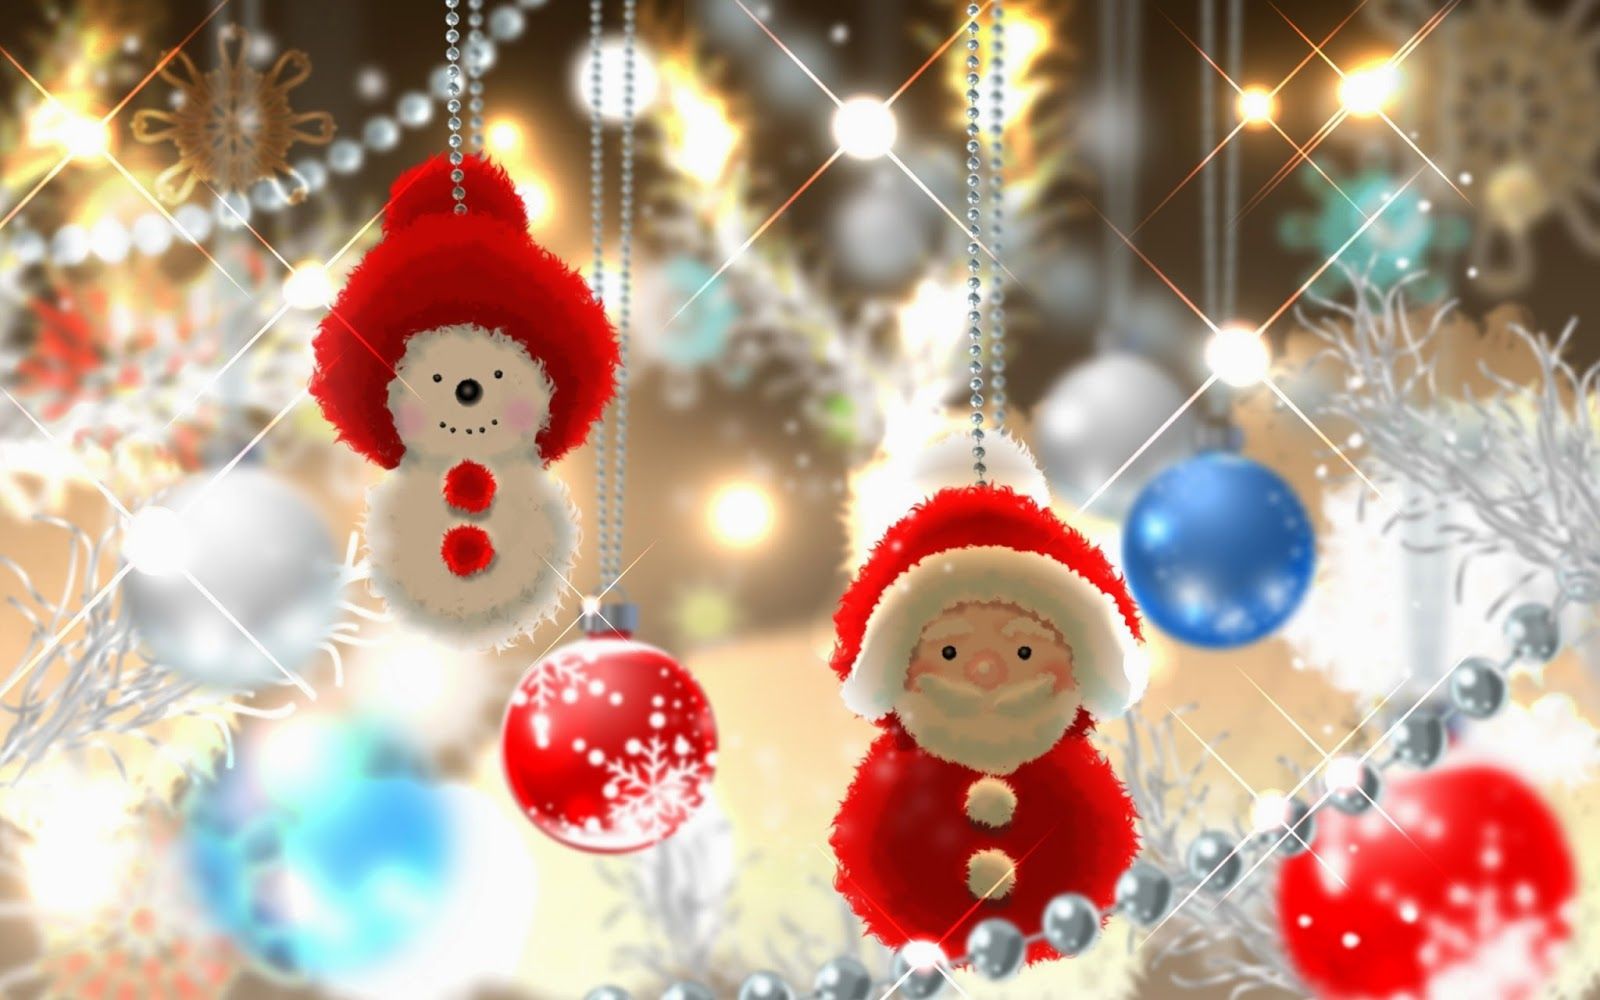 cute-snowman-dolls-santa-claus-toys-for-home-decoration-images-pictures.jpg